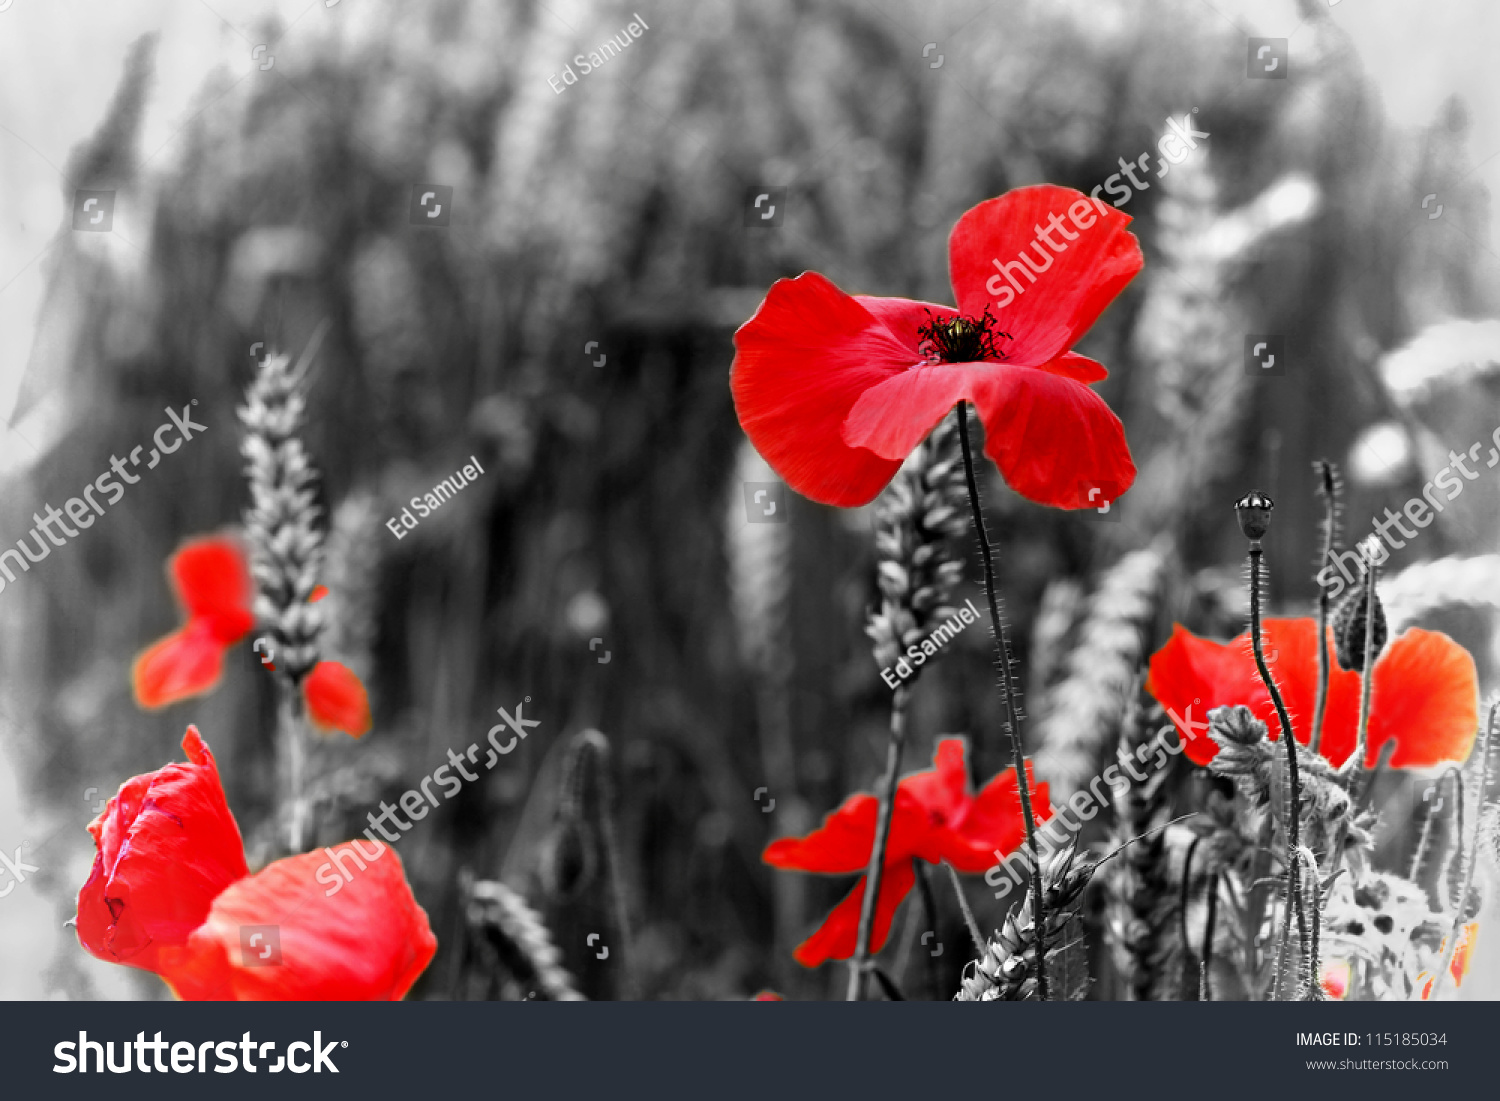 Poppy Red Poppy Flower Symbol War Stock Photo Royalty Free